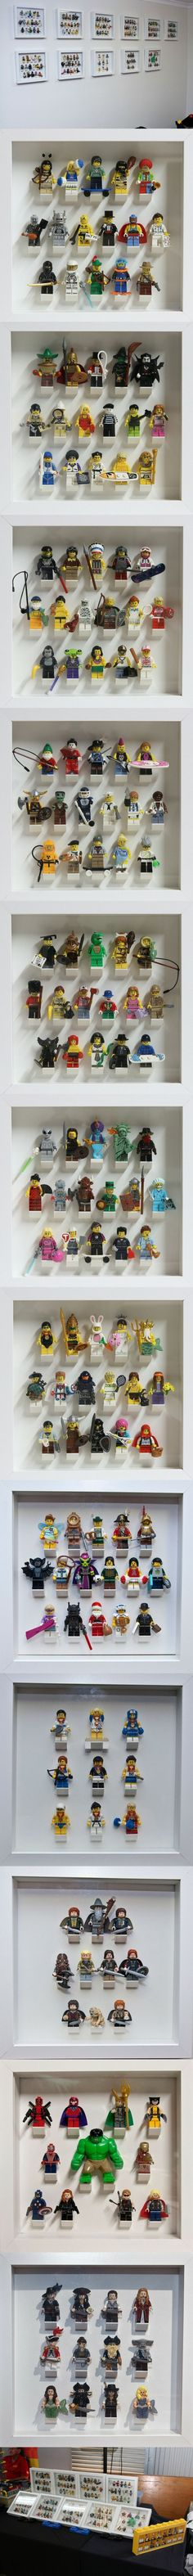 Collectible Minifigures in IKEA Ribba Frames #LEGO #Minifigures #IKEA by Superduper